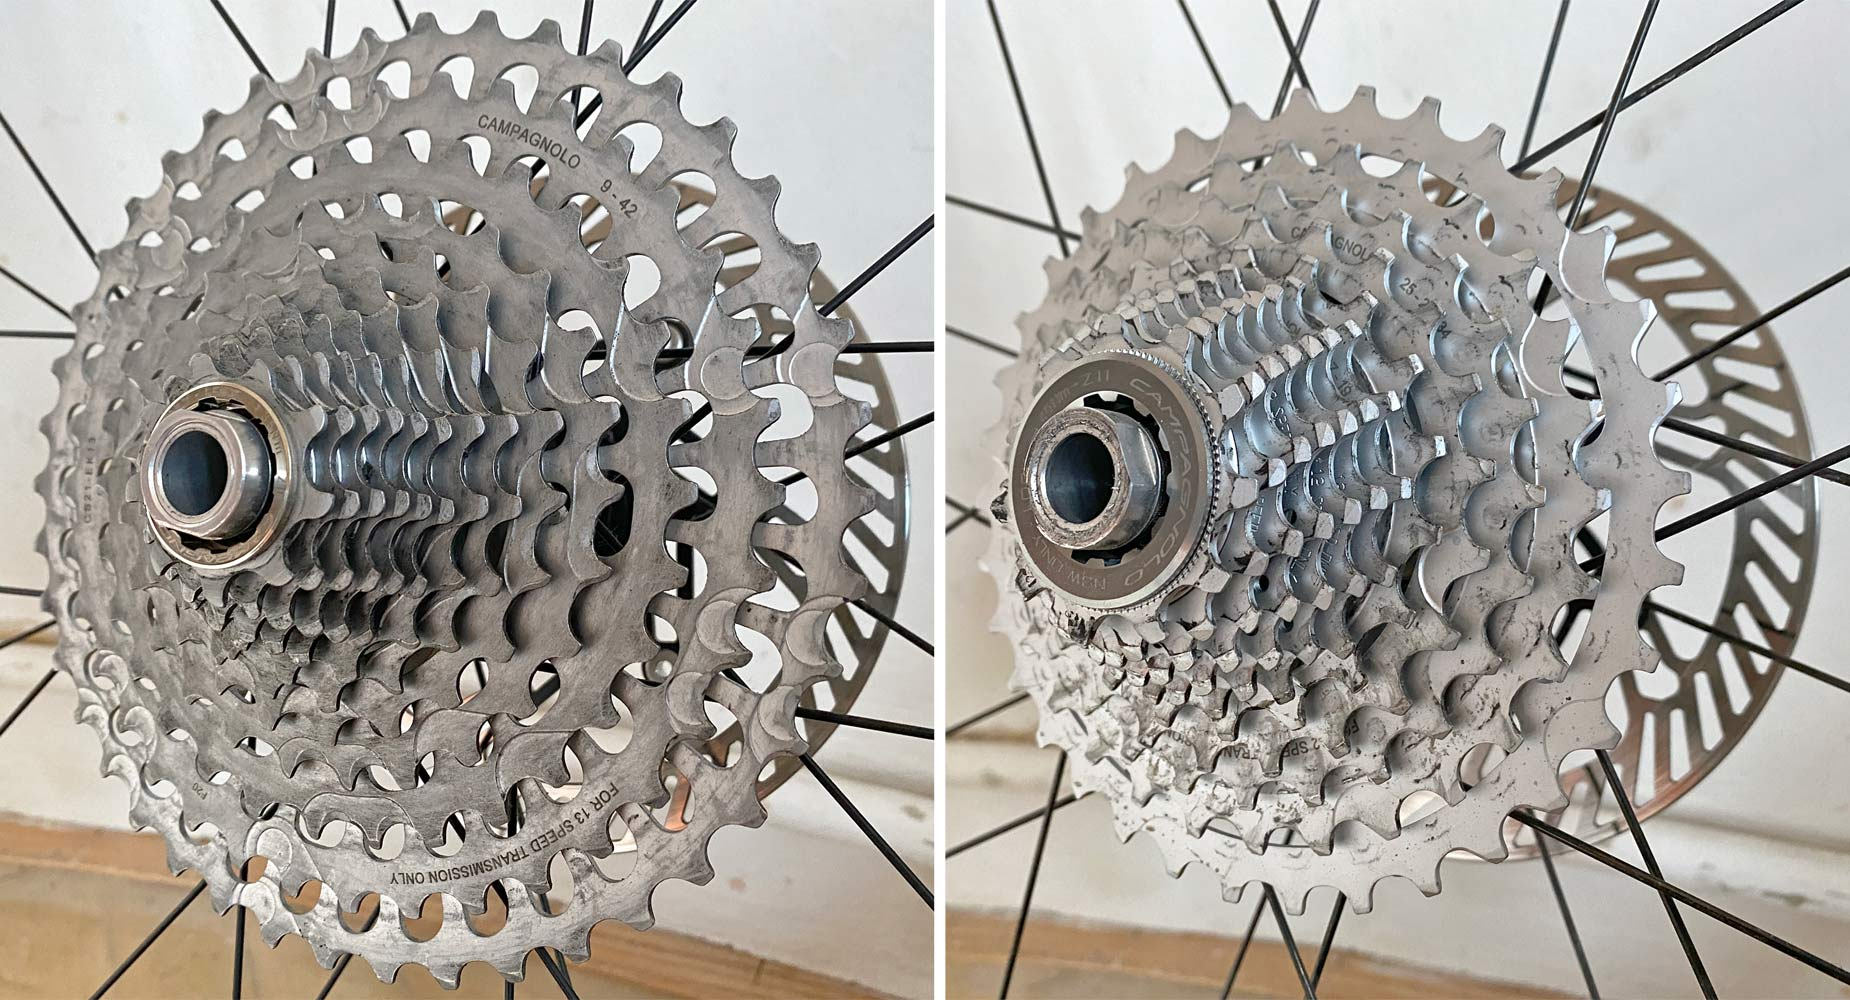 Campagnolo N3W freehub body Tech Feature in detail, new Campy backwards compatible gravel road bike wheels,new lockrings